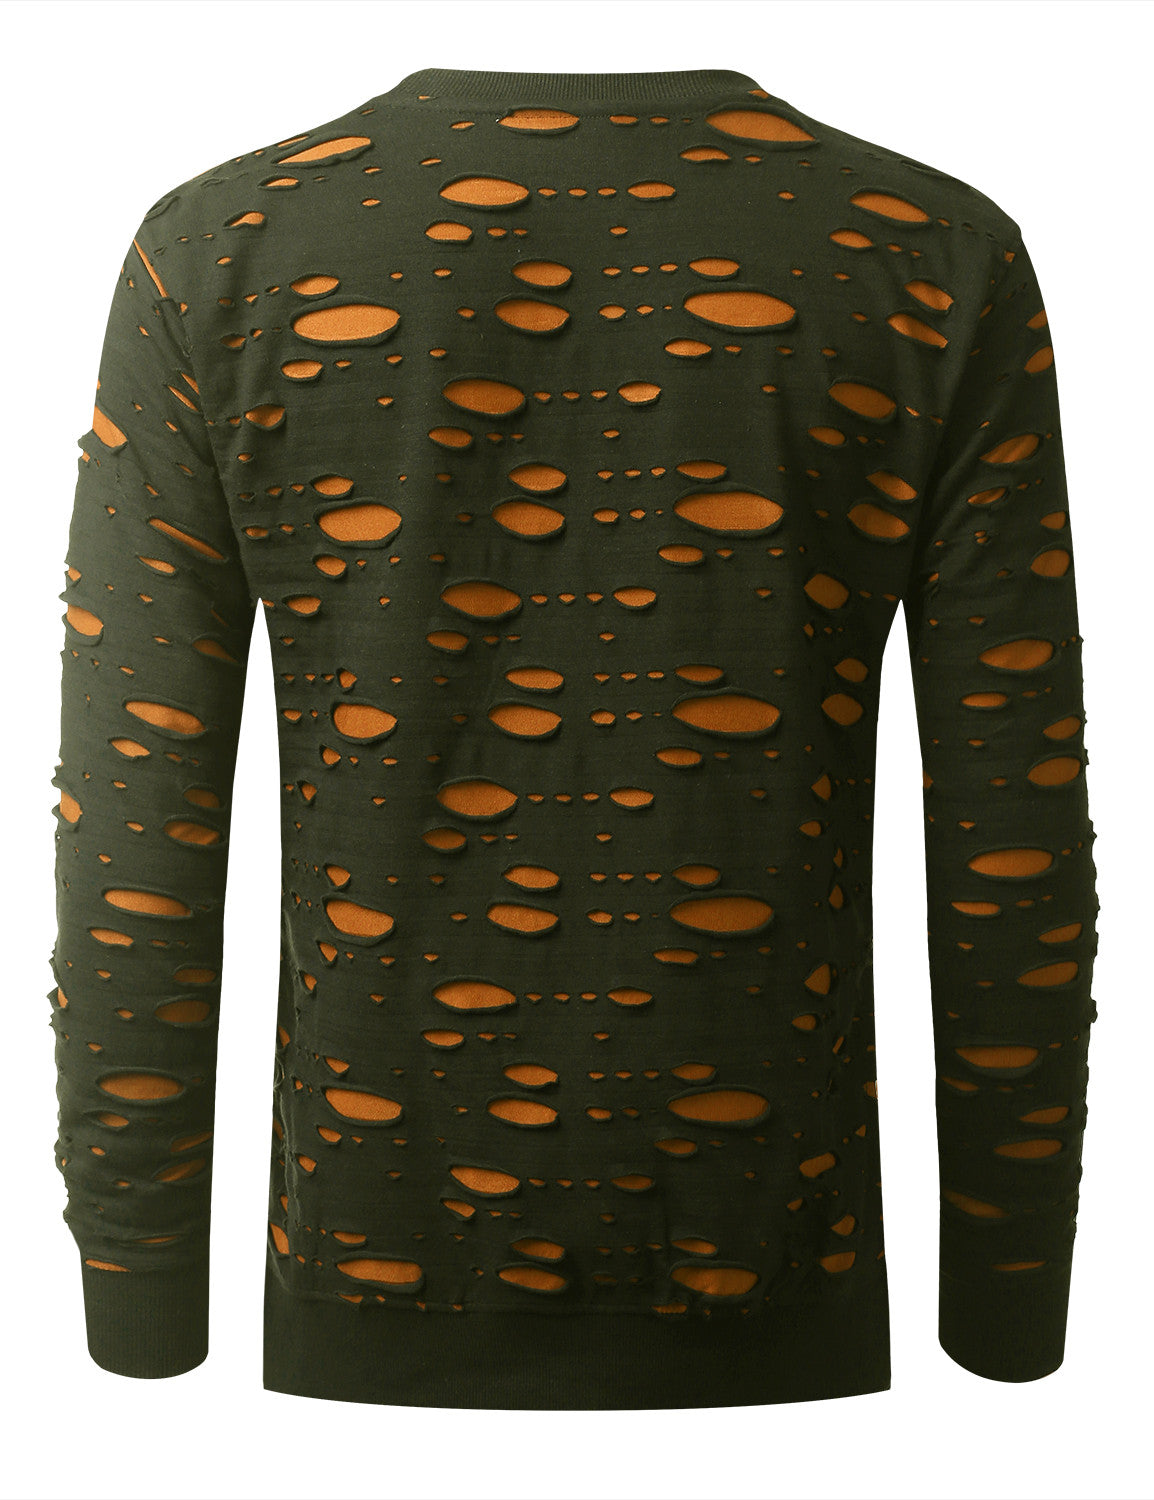 OLIVE 2 Tone Ripped Long Sleeve Tshirt - URBANCREWS